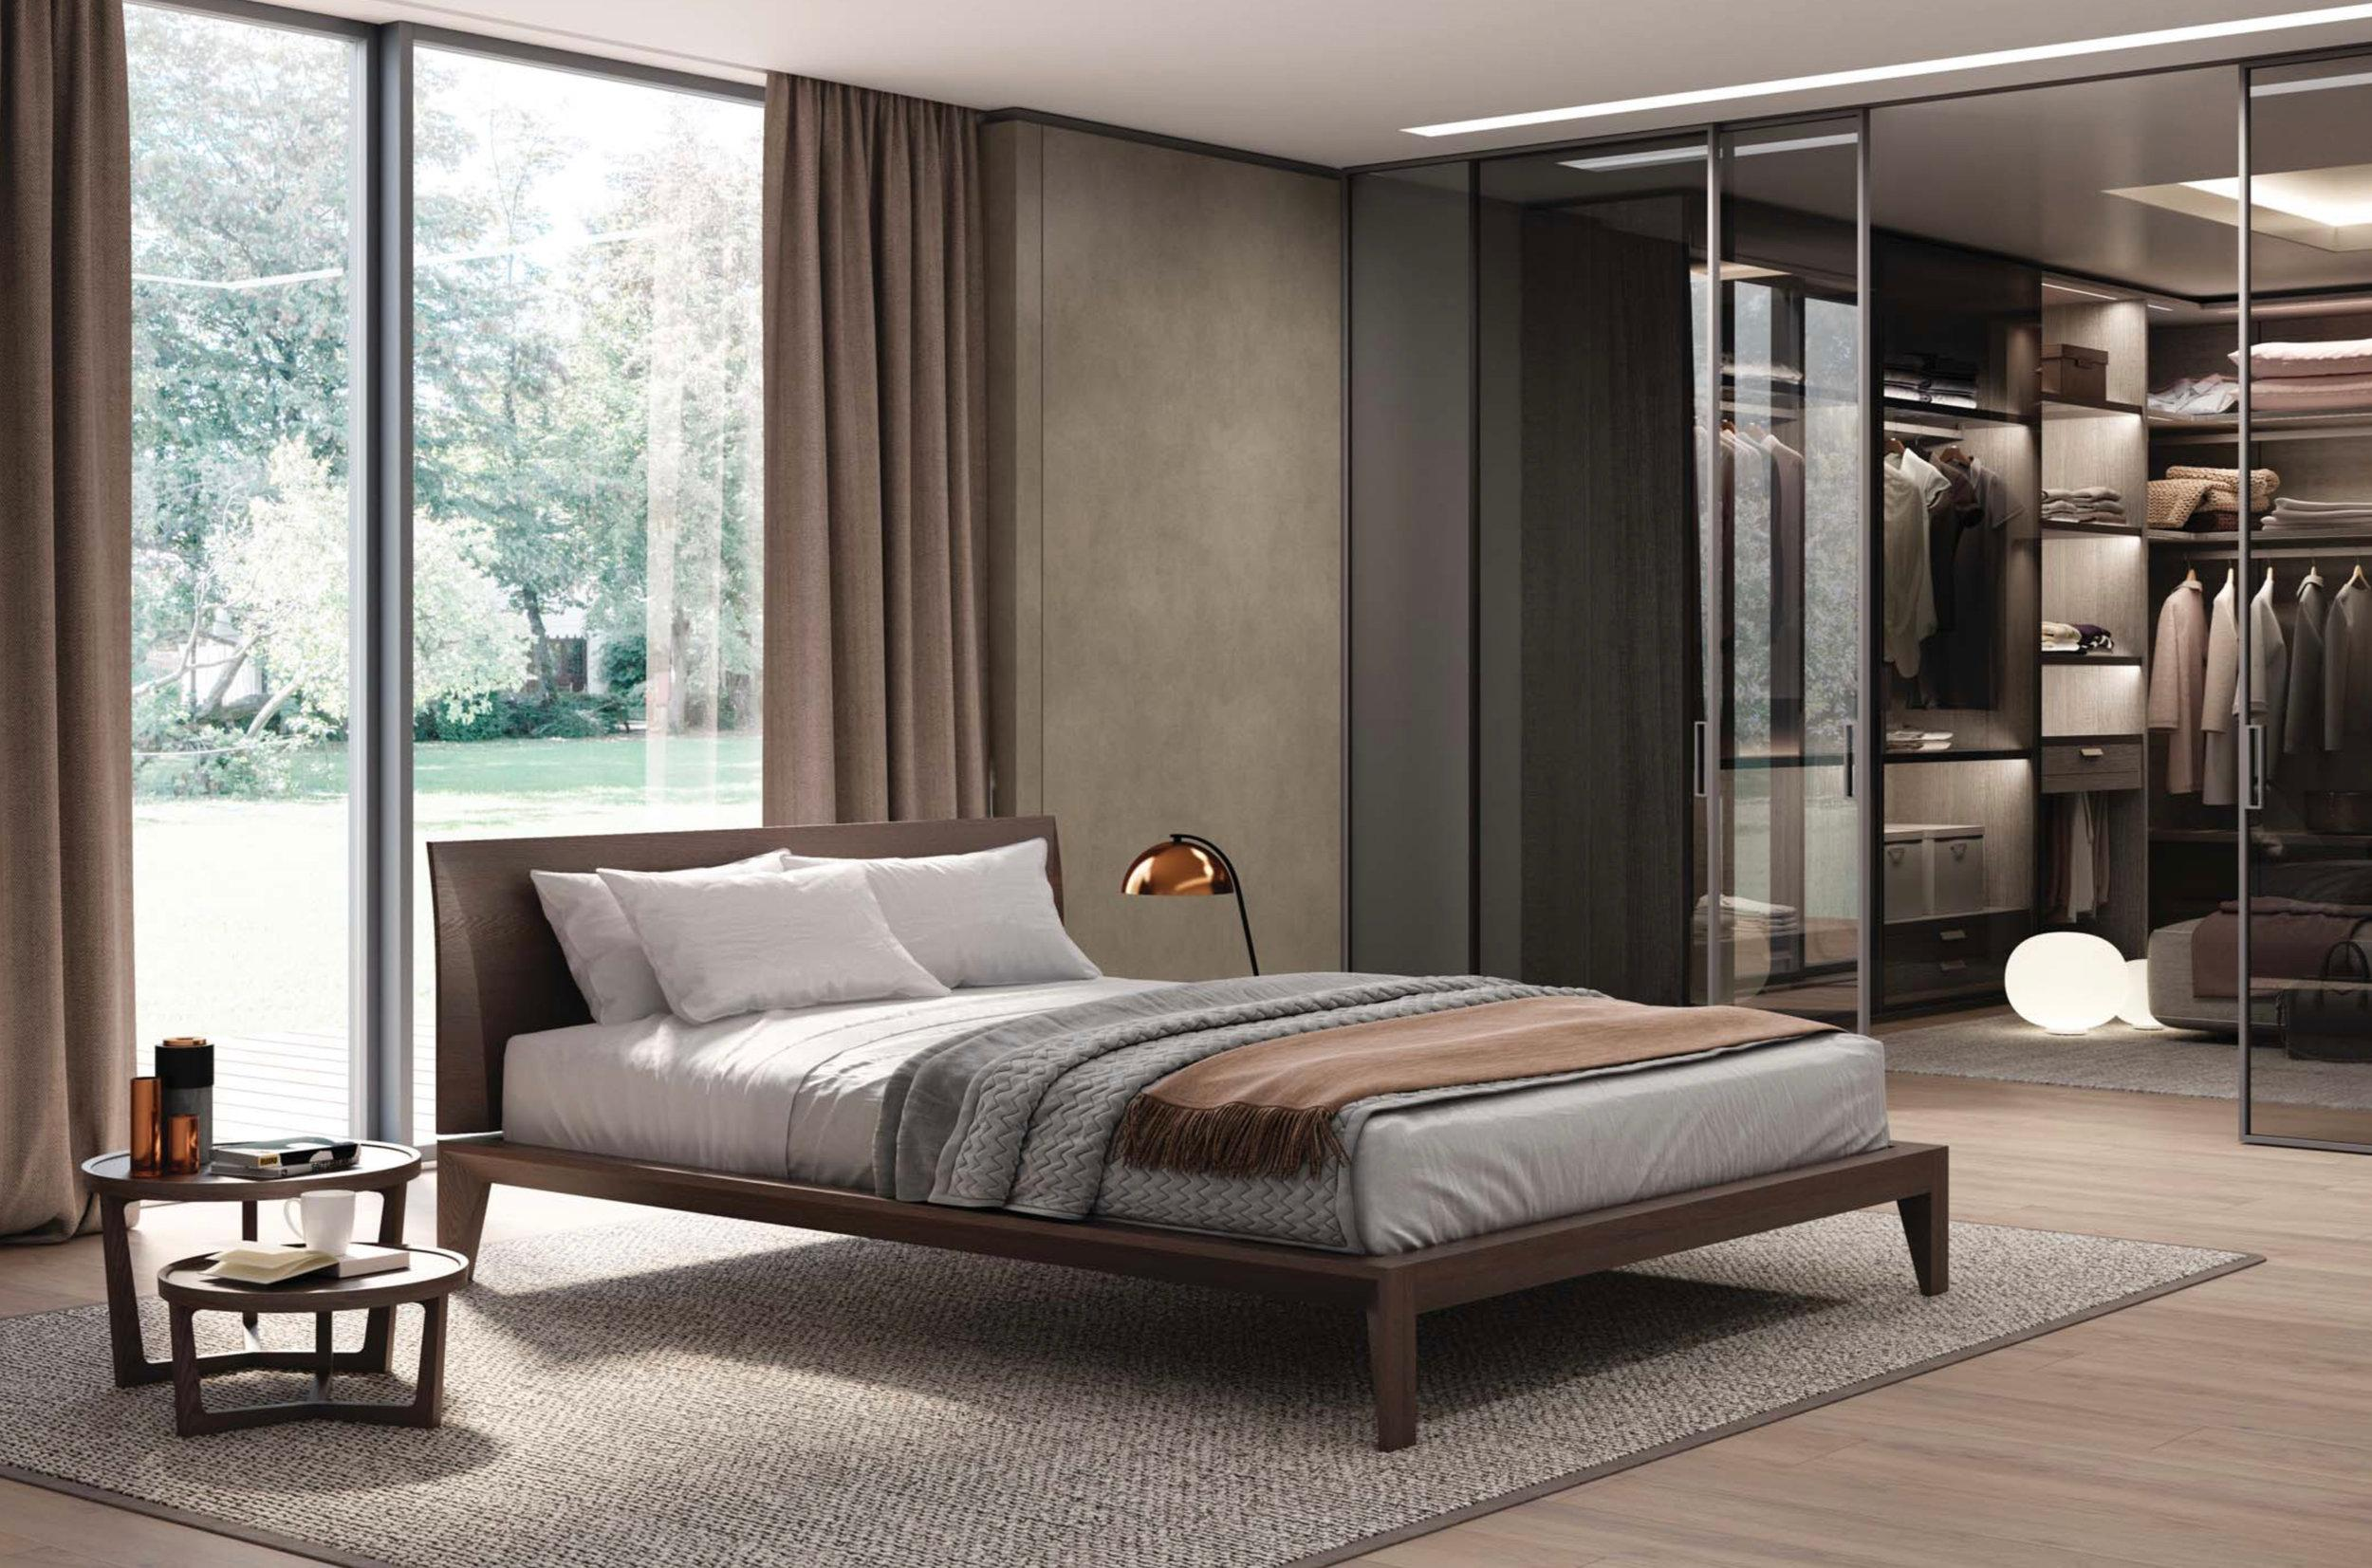 Italian Furniture Bedroom Italian Modern Wood Bed Handmade And Designed In Italy Wood Or Leather Queen